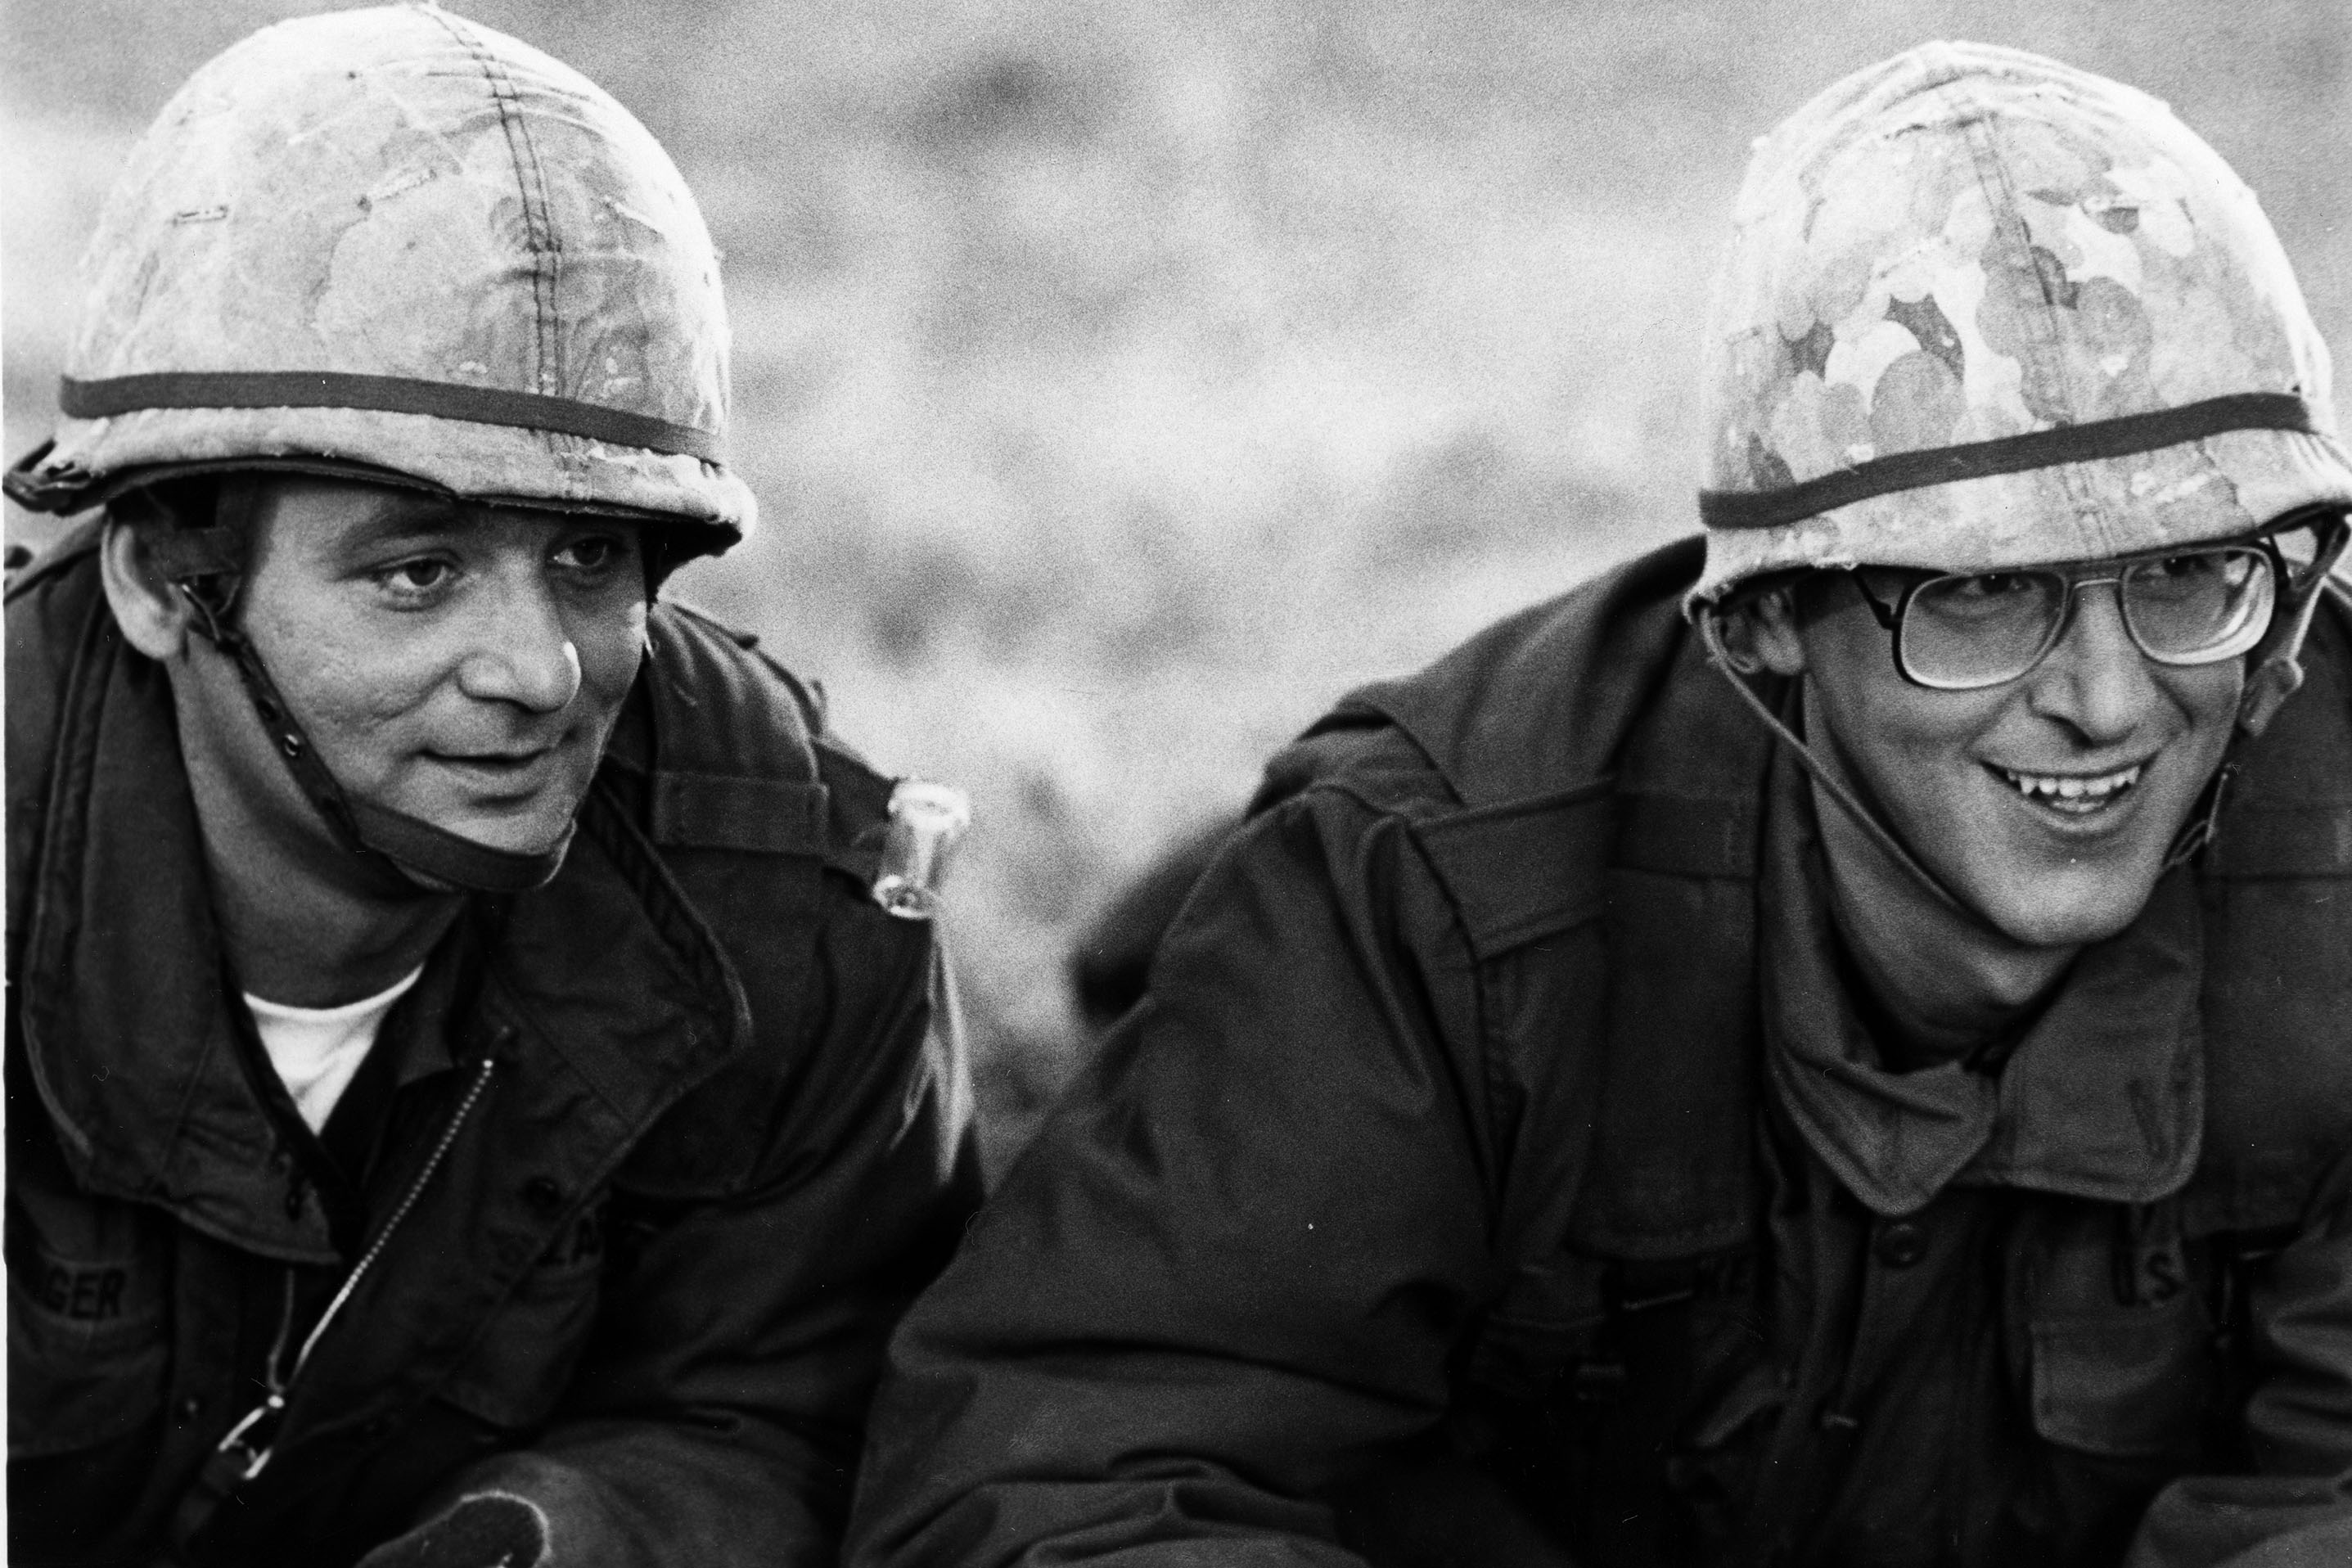 Murray (left) and Ramis star in the film 'Stripes' (1981).